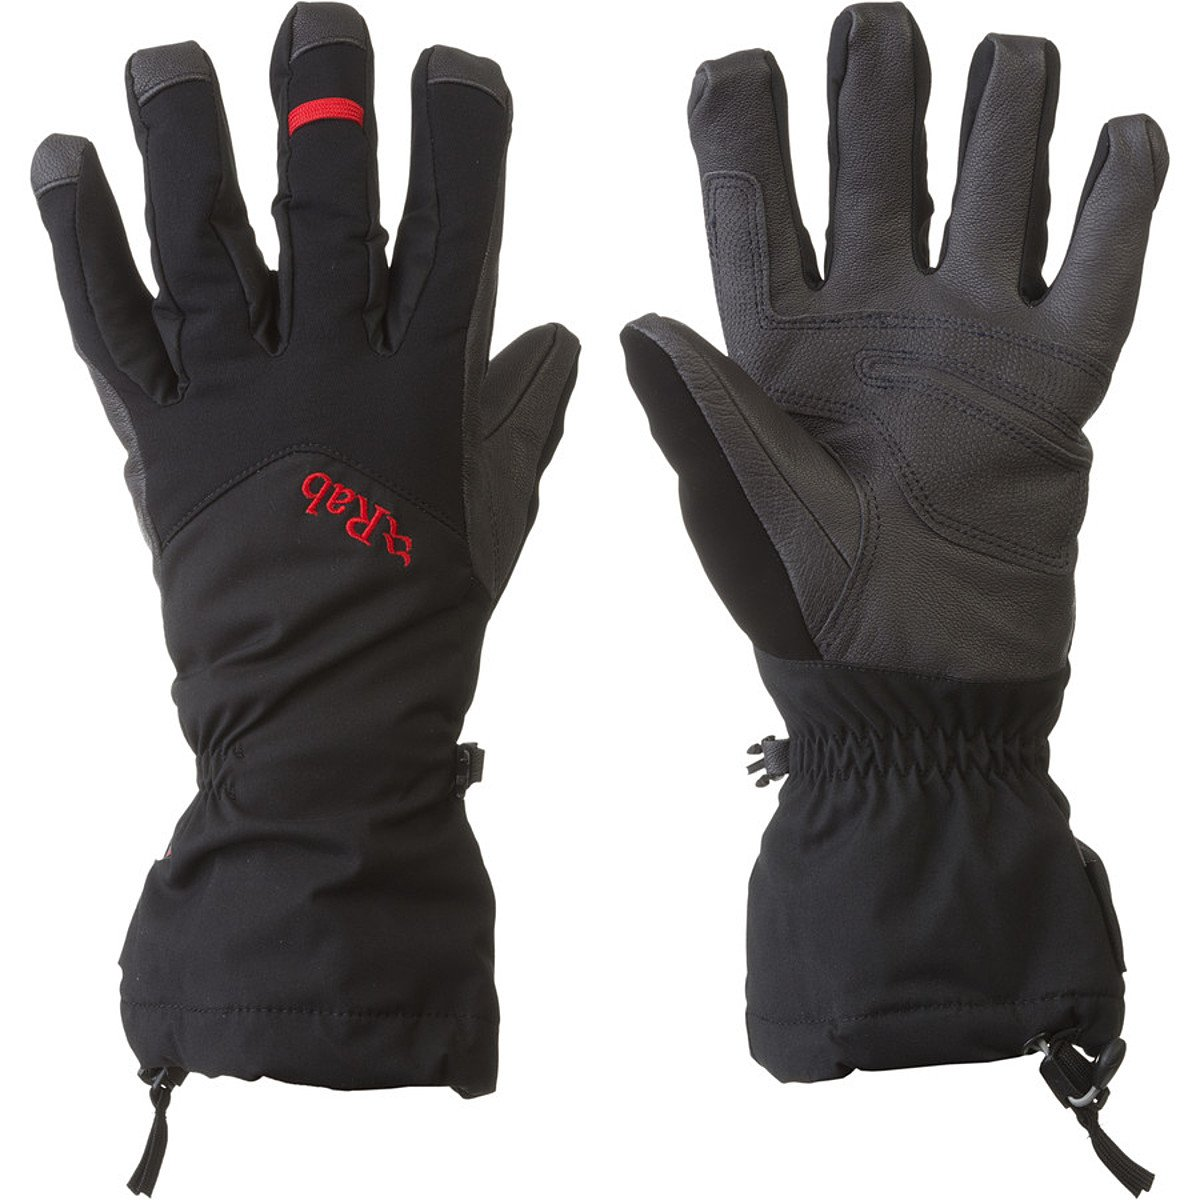 Rab Icefall Gauntlet Glove - Men's Black Medium